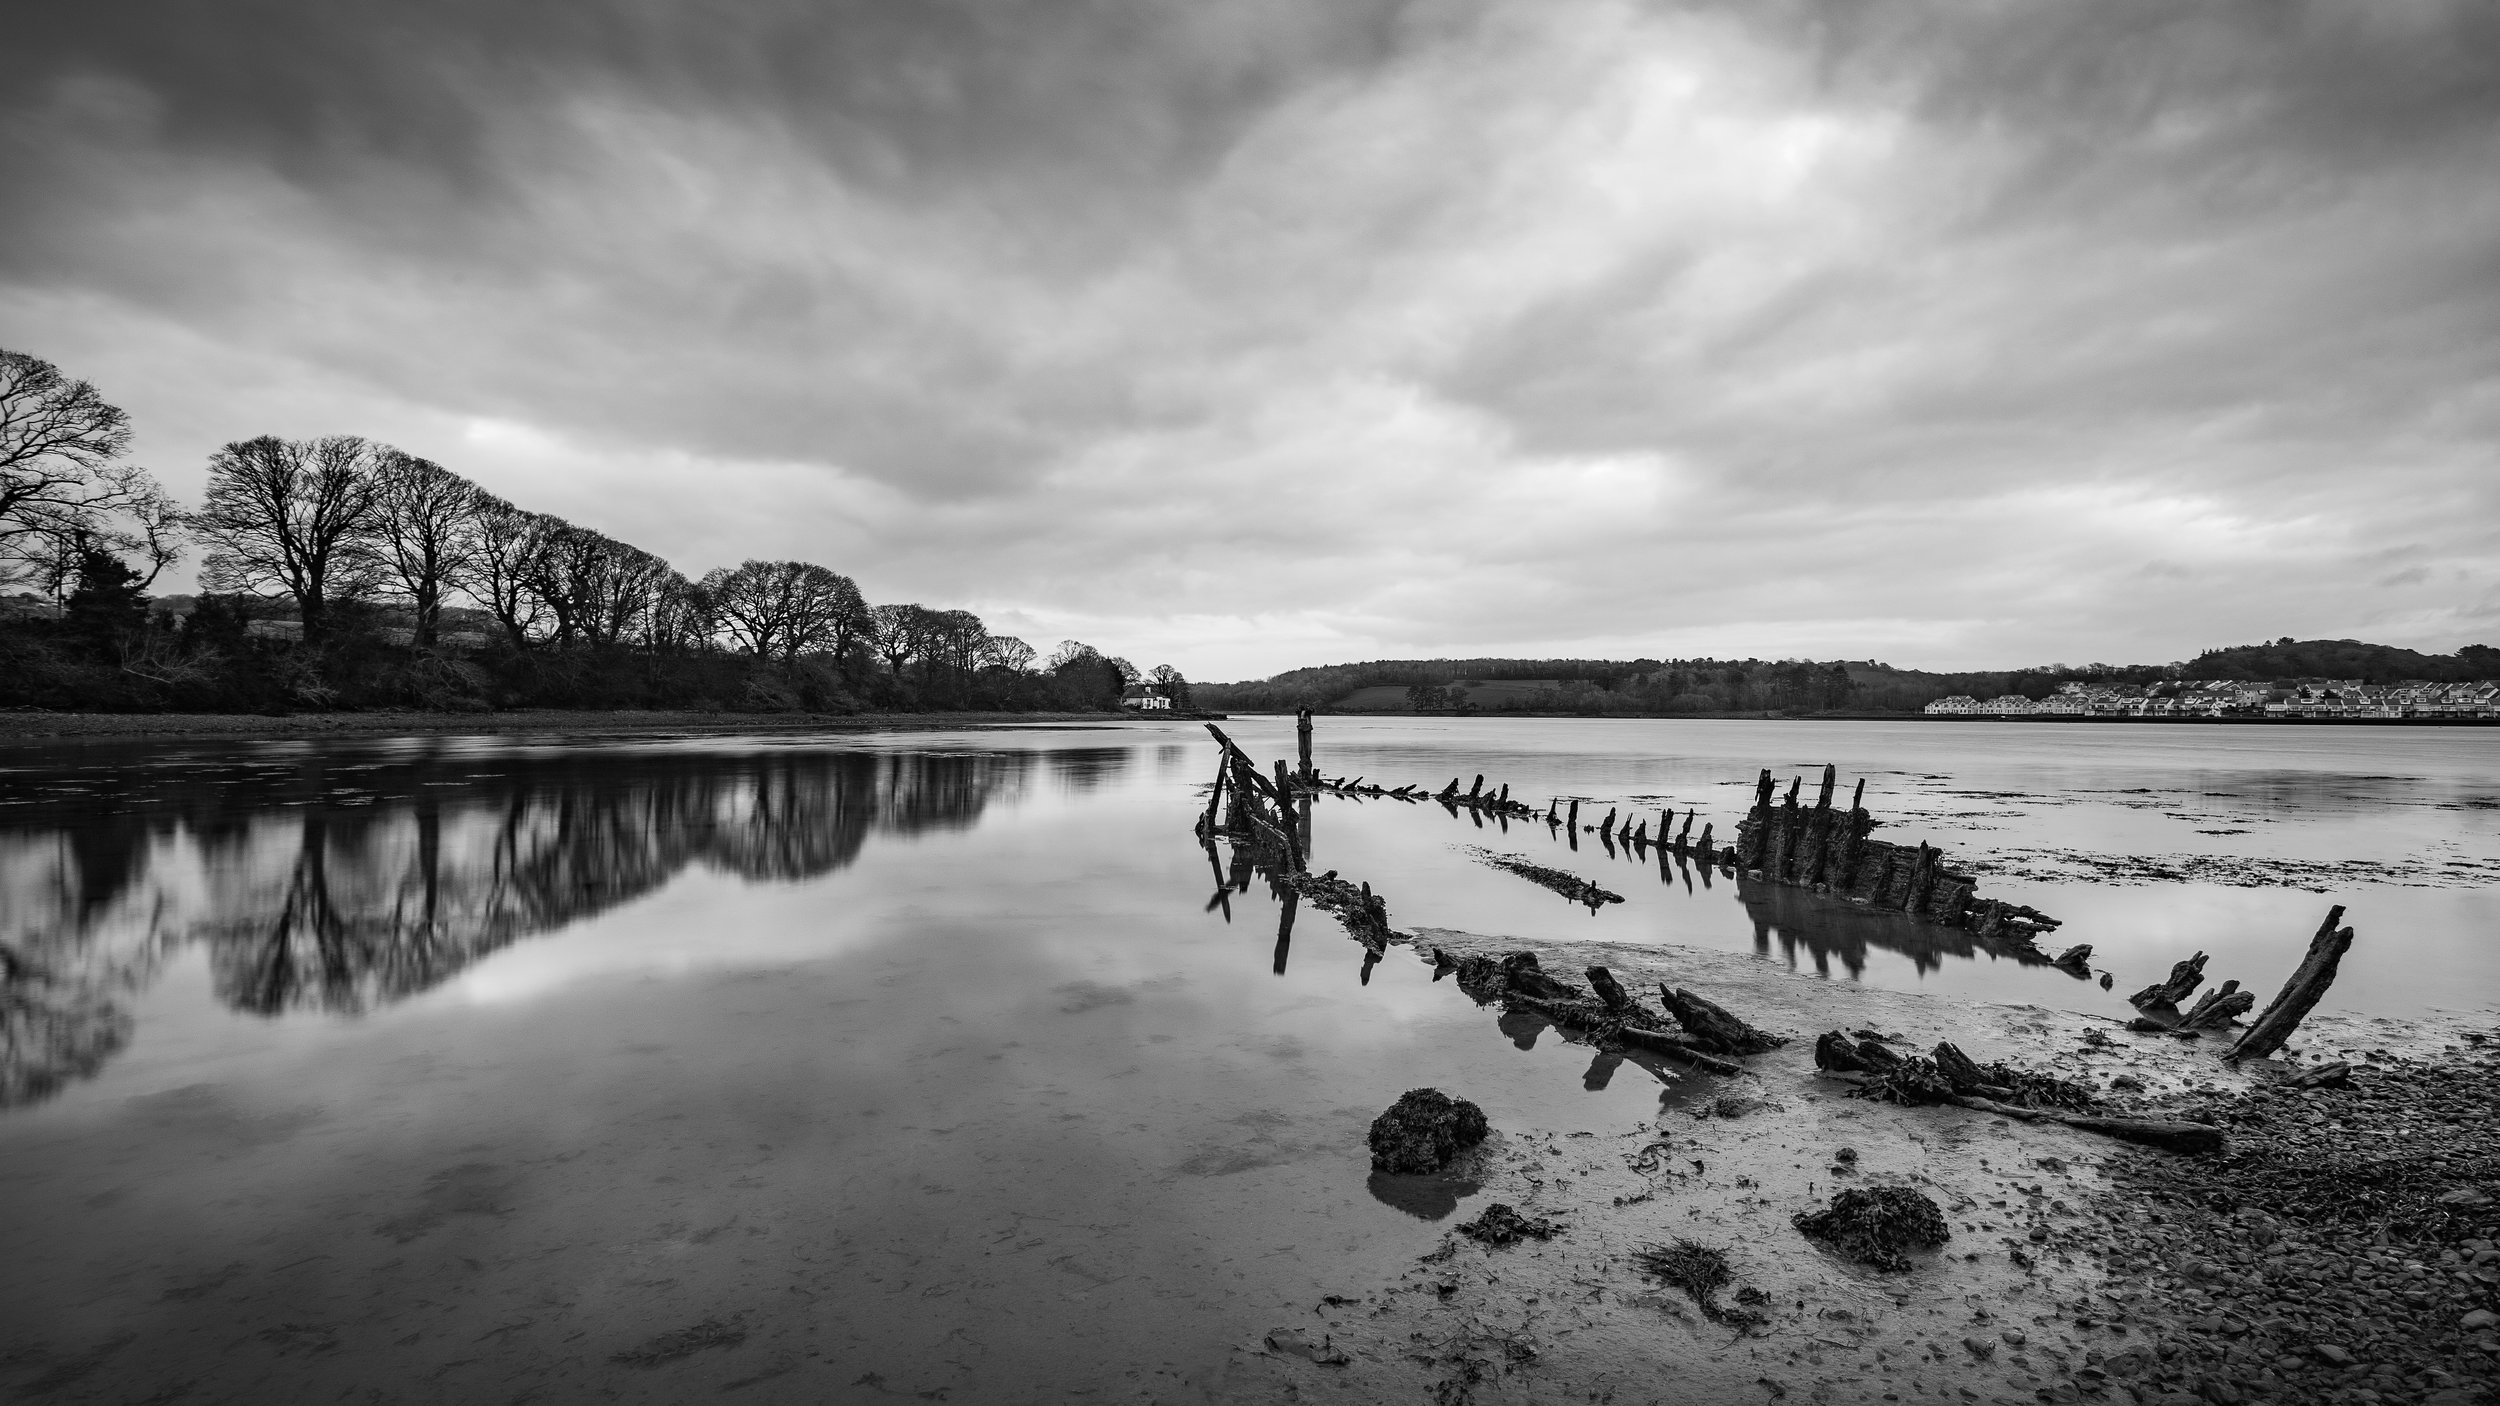 Wreck of the Seven Sisters, Menai Straights